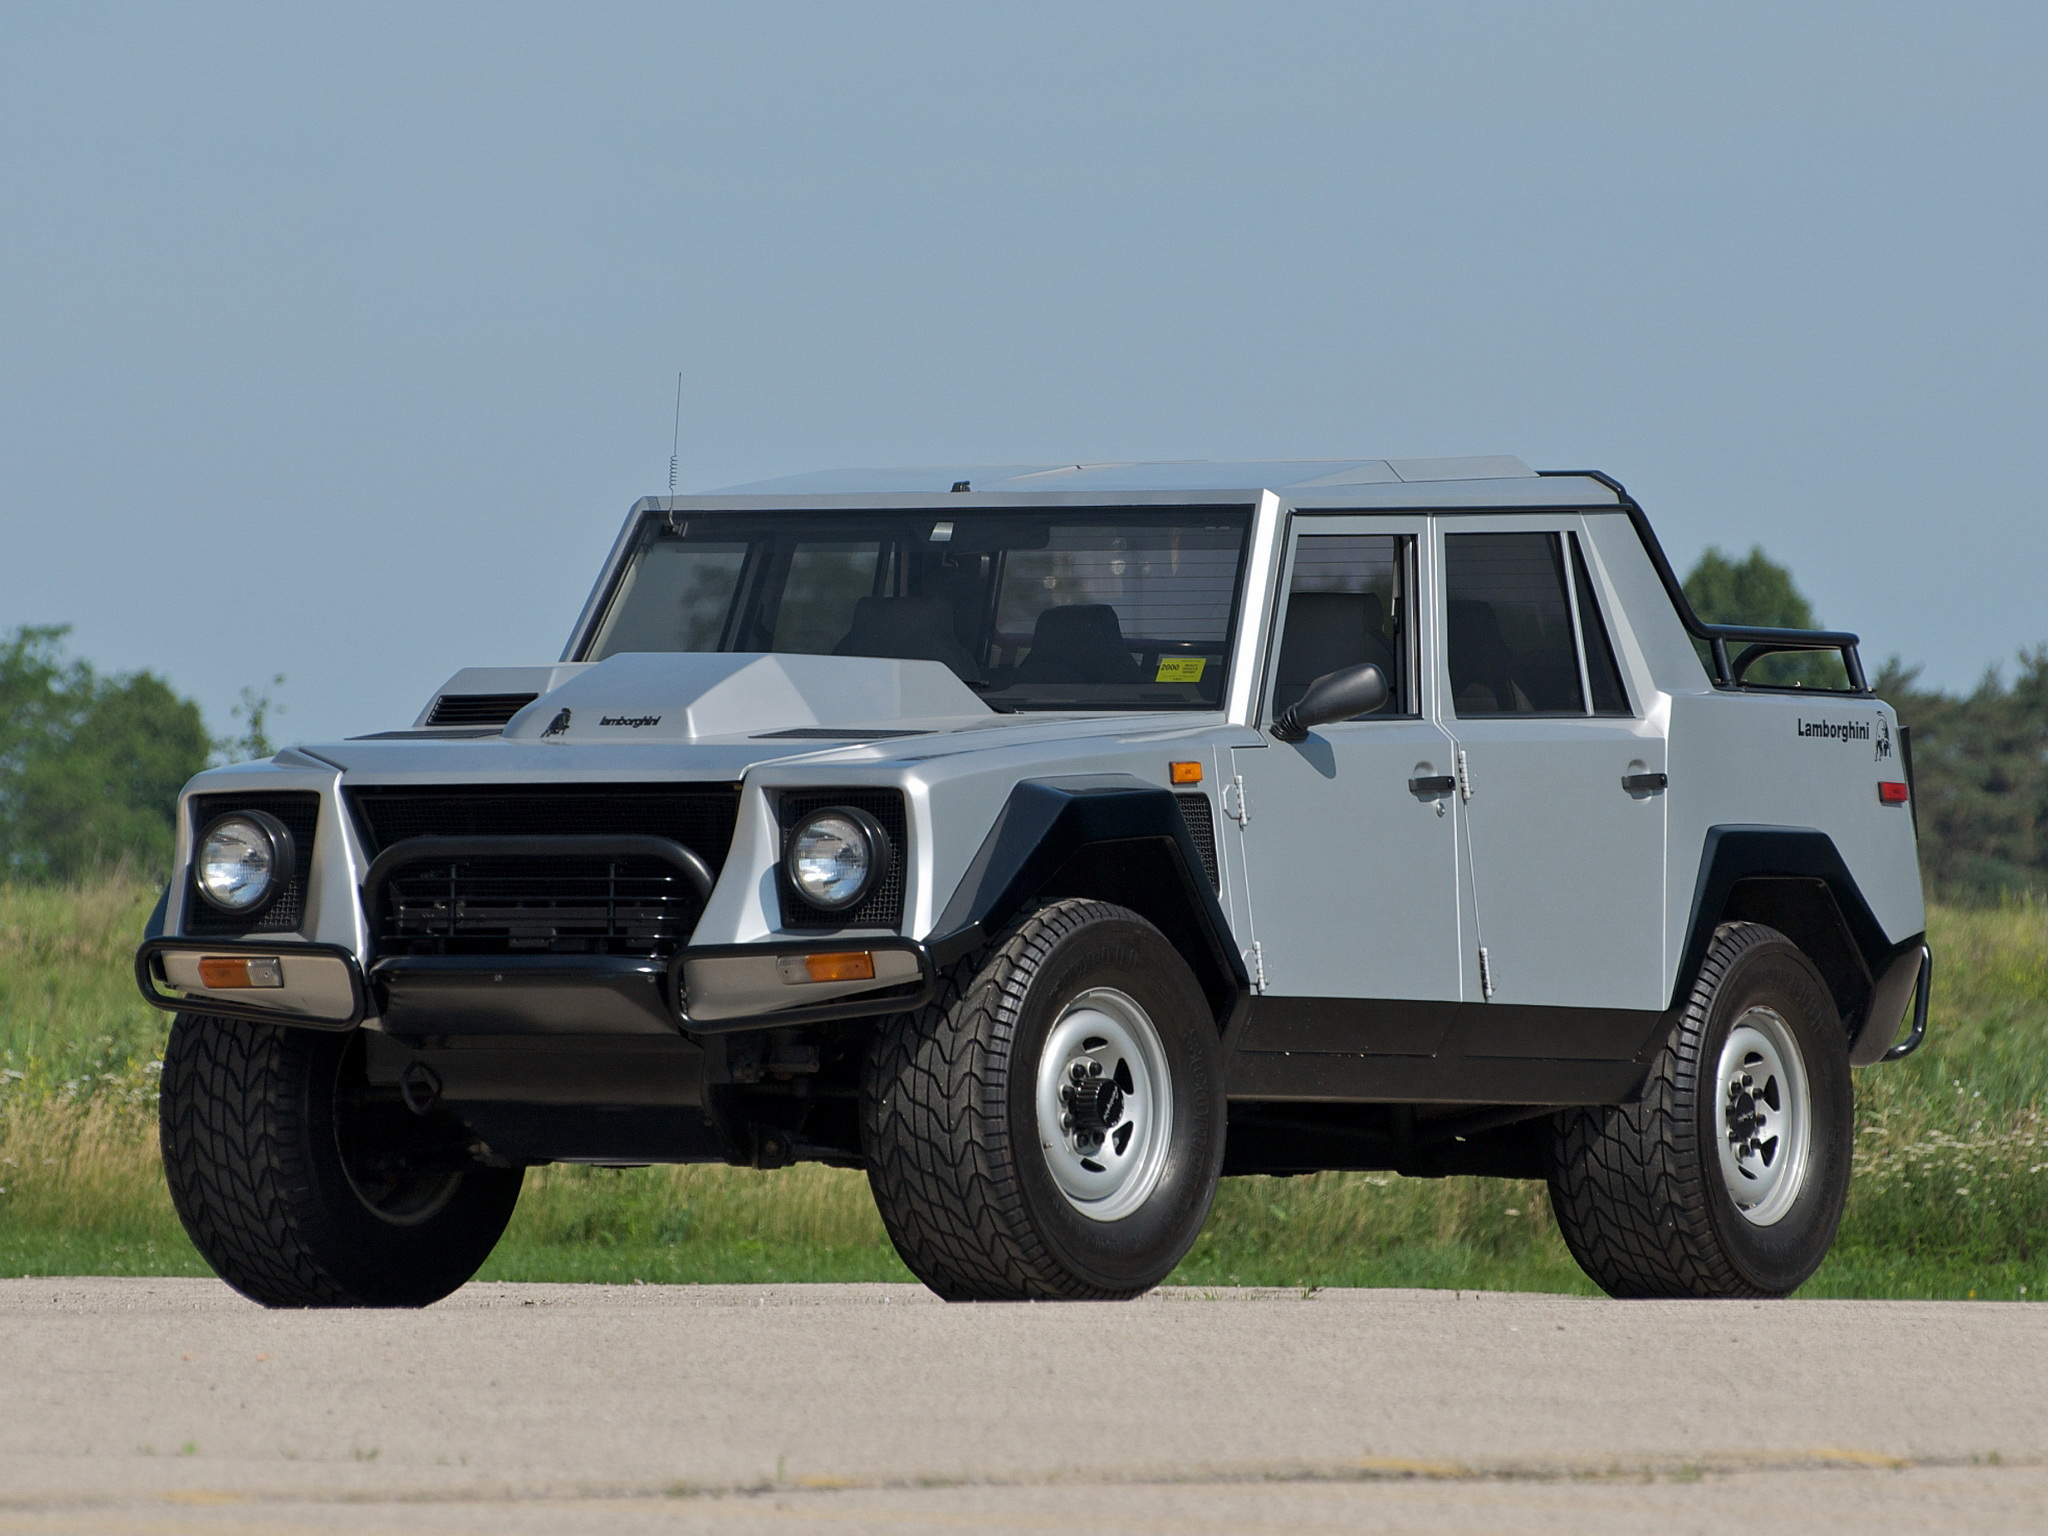 hunter-s-thompson-lamborghini-lm002-goodshoutmedia